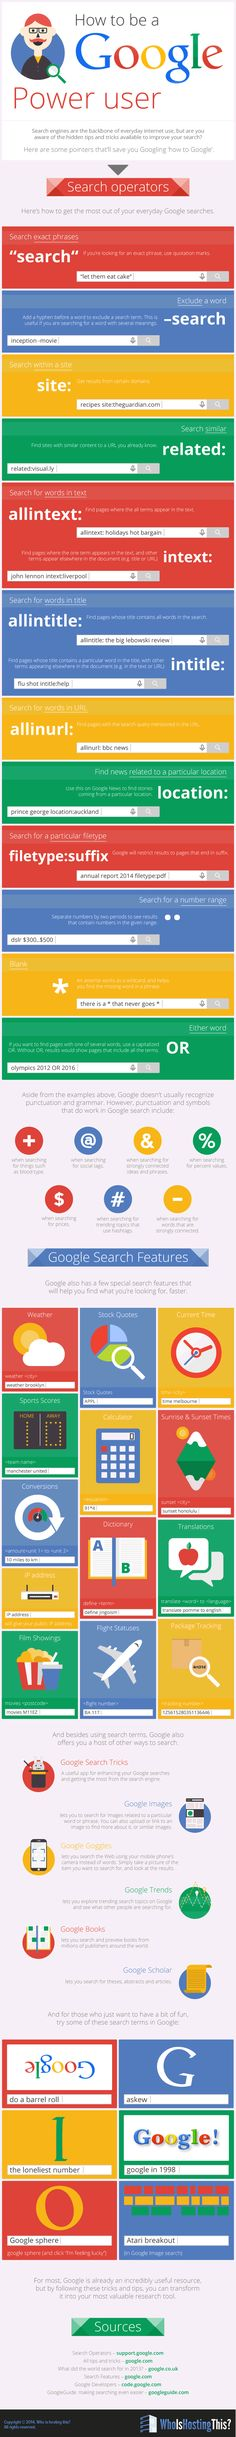 How to be a #Google power user